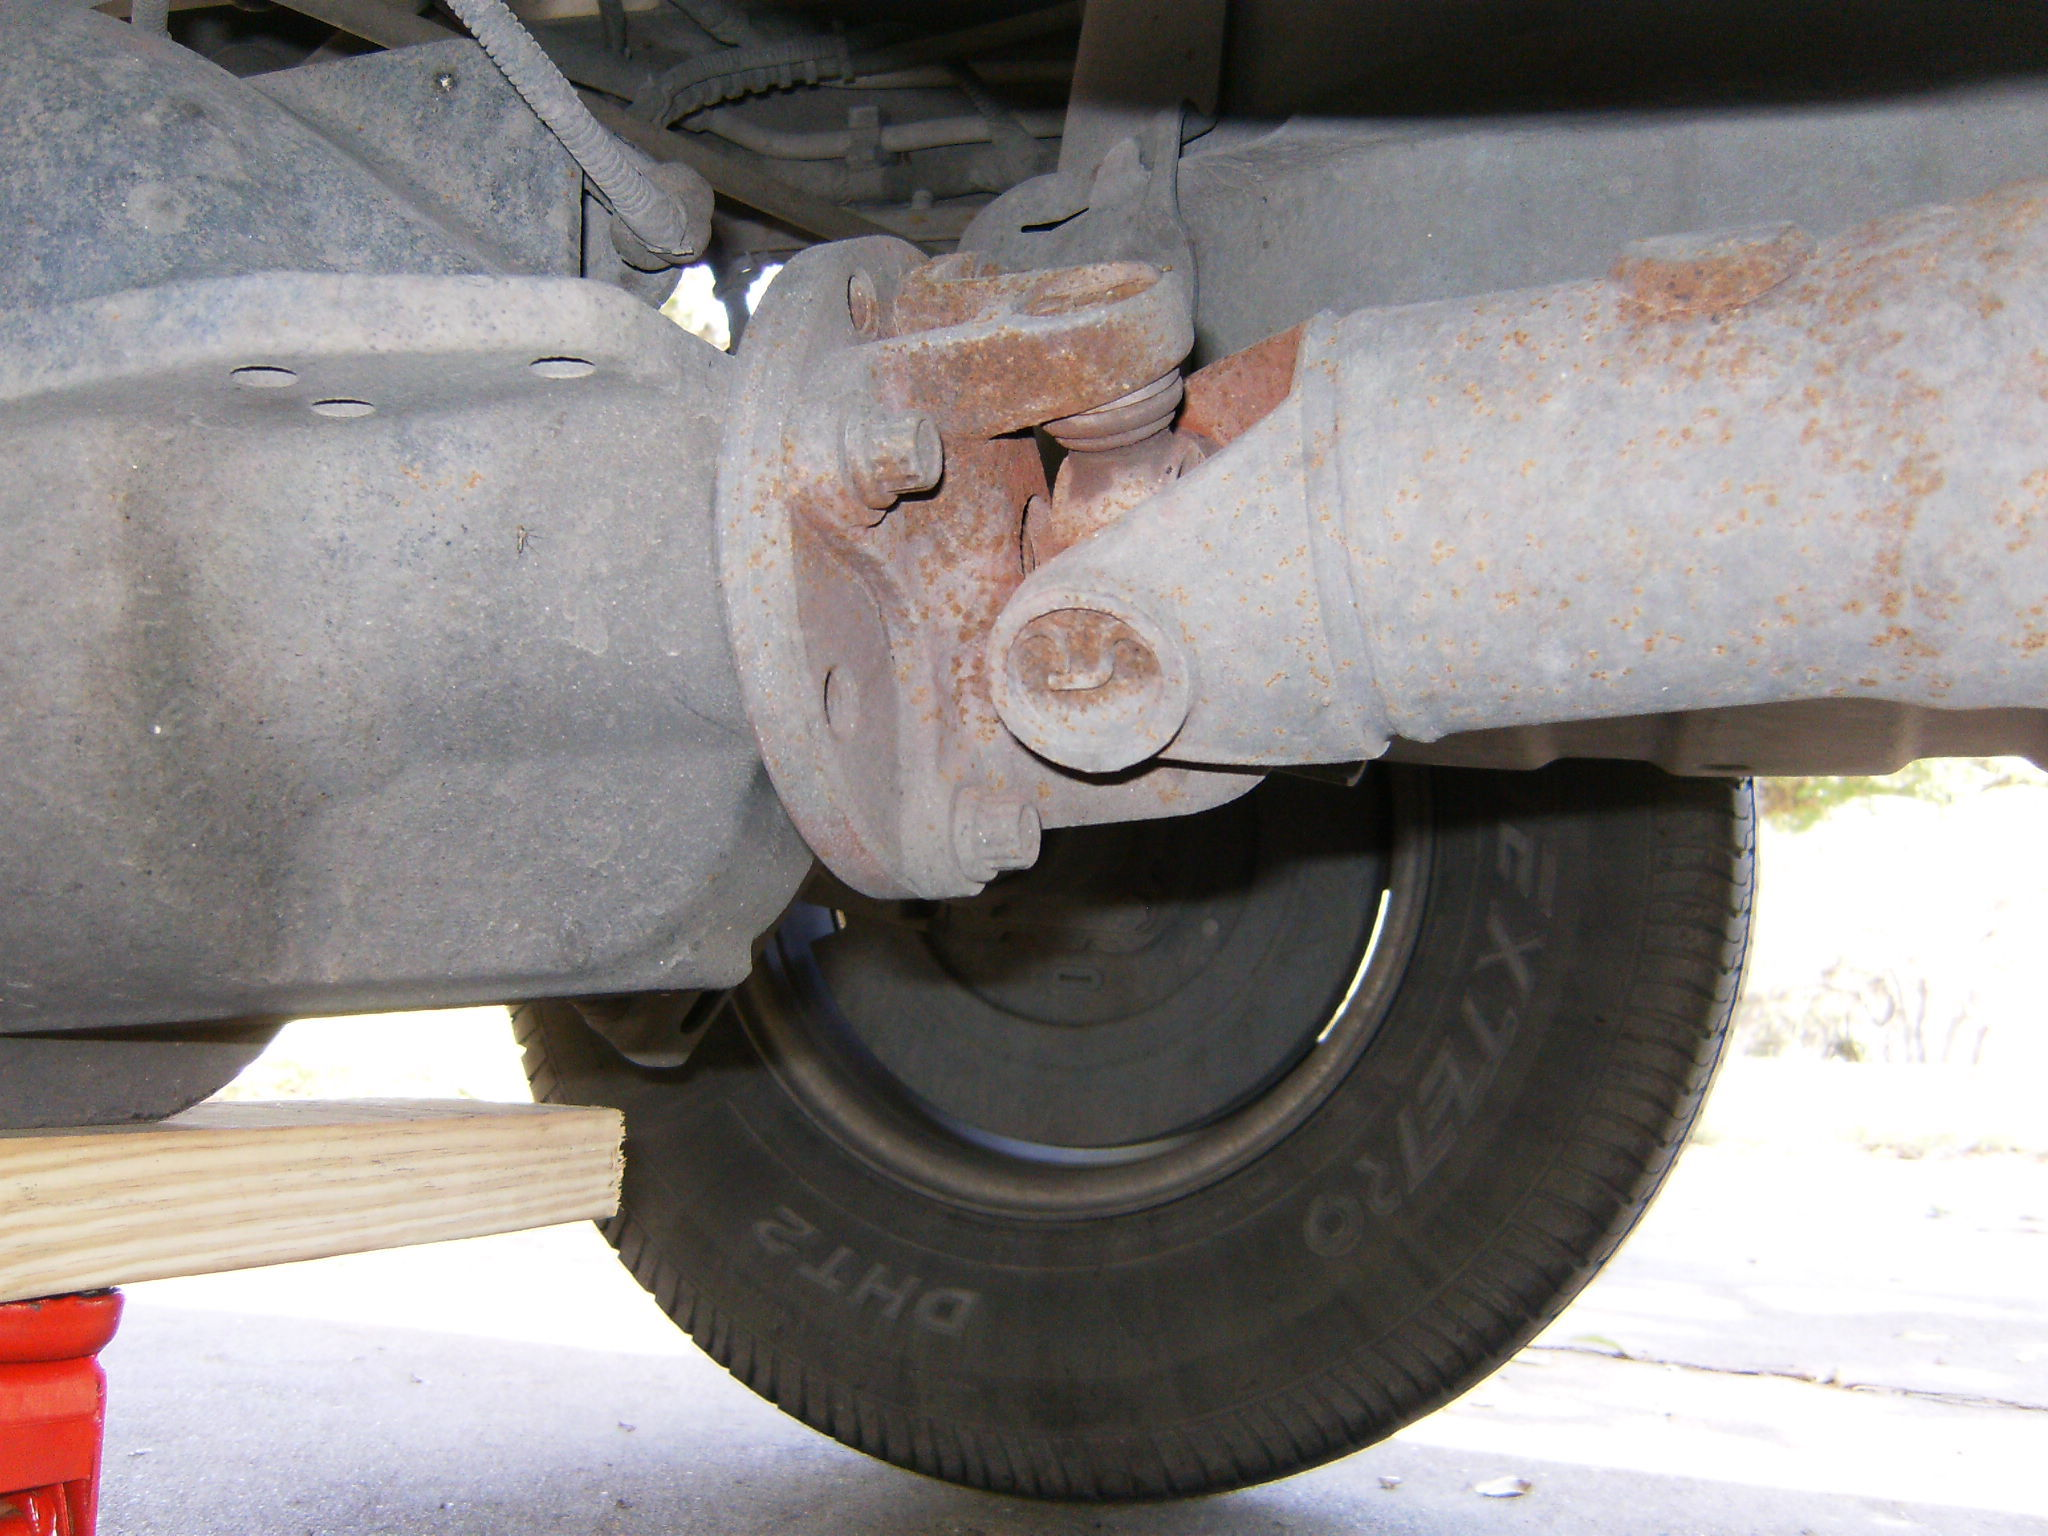 1997 2004 ford f 150 repair 1997 1998 1999 2000 2001 2002 driveshaft rear u joint publicscrutiny Image collections